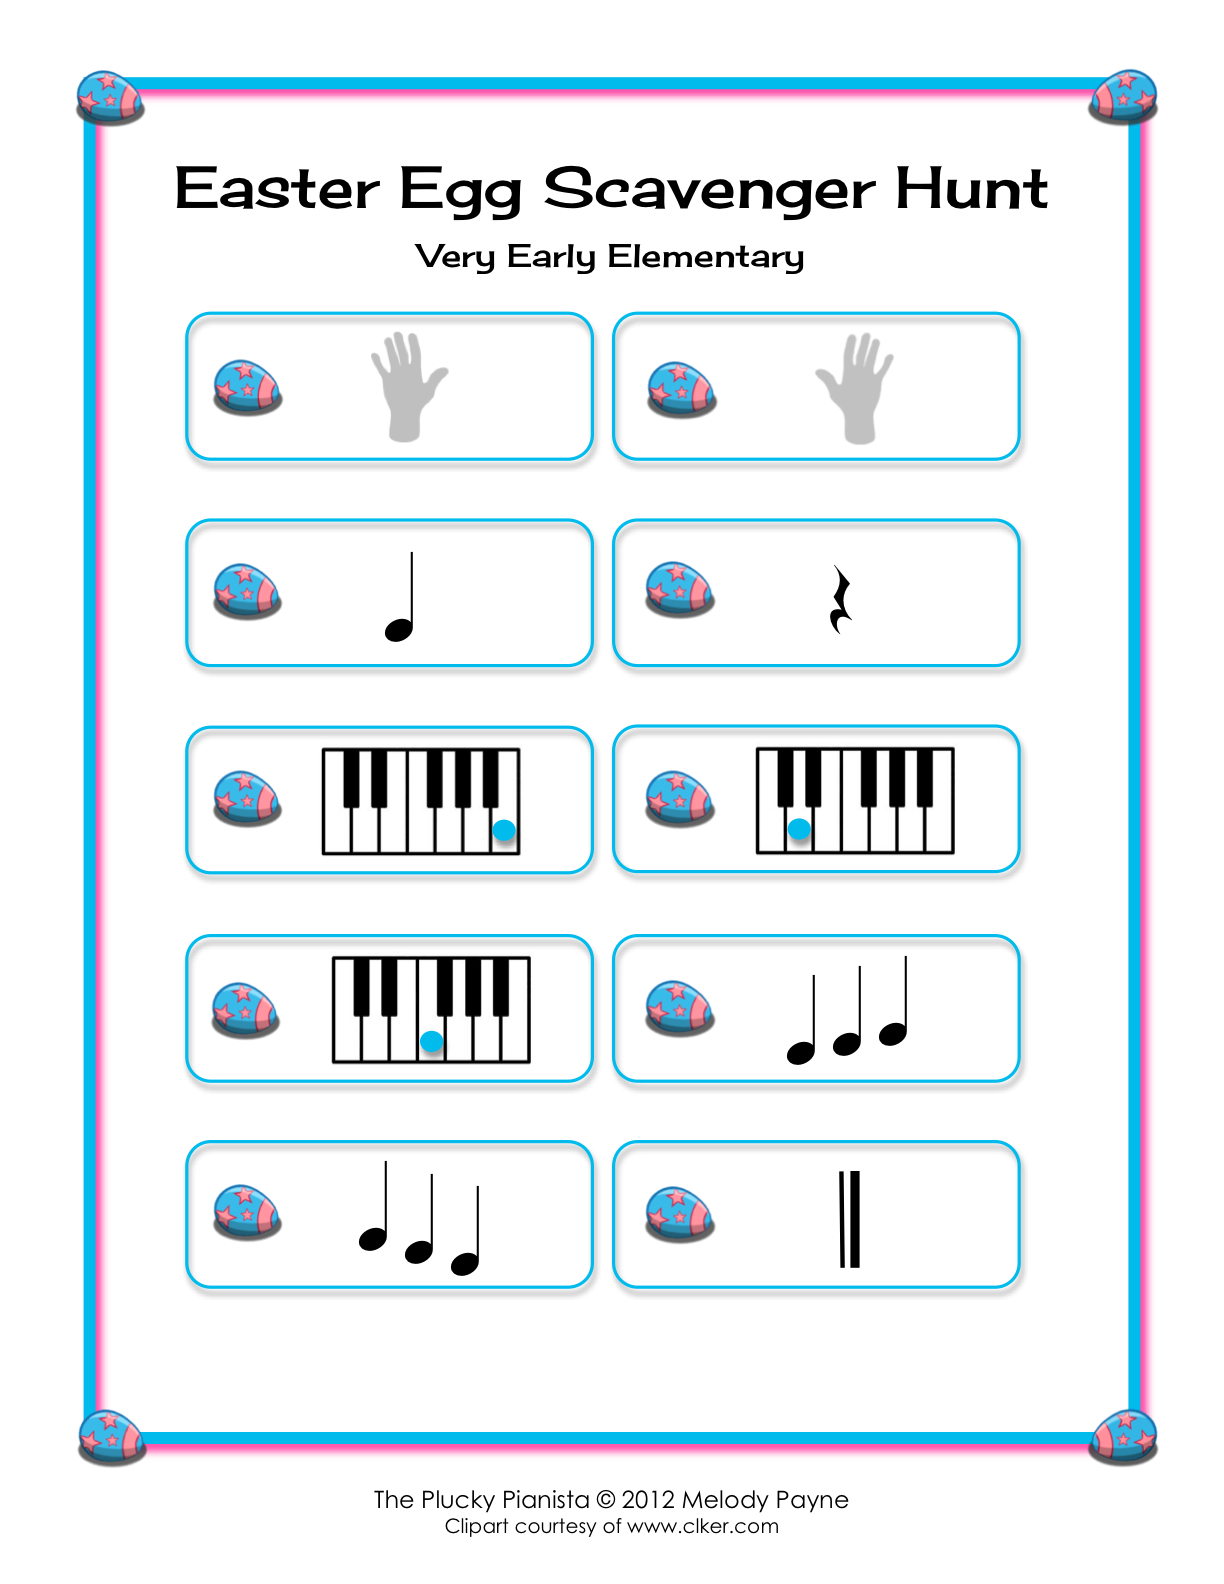 Easter Egg Scavenger Hunt - Very Early Elementary